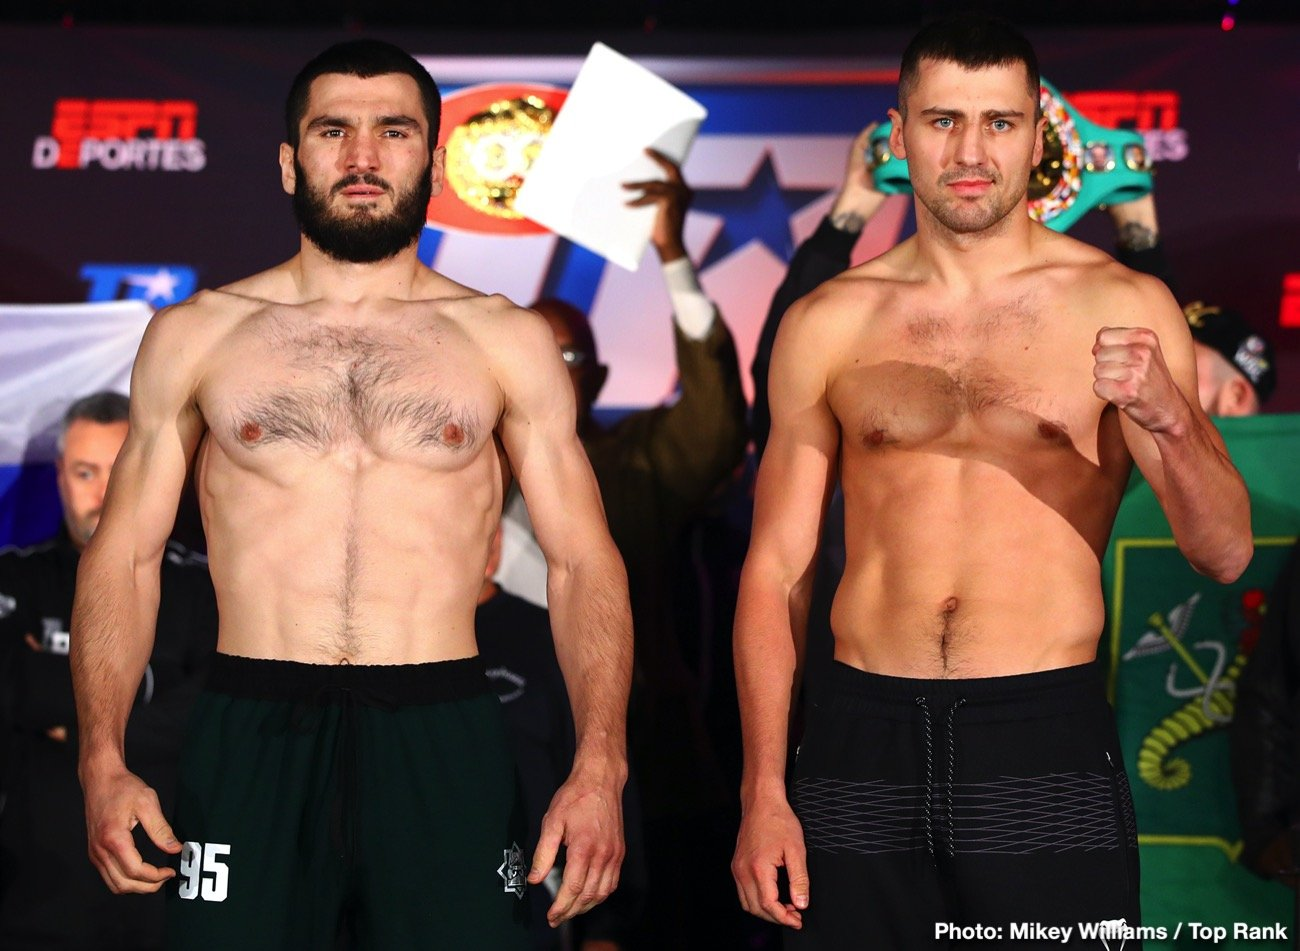 Luis Collazo - Light heavyweight champions Artur Beterbiev and Oleksandr Gvozdyk both made weight successfully on Thursday afternoon for their unification match this Friday evening on Top Rank Boxing on ESPN and ESPN Deportes. Beterbiev (14-0, 14 KOs) looked shredded at 174.5 lbs. Gvozdyk (17-0, 14 KOs) weighed 174.3 lbs.  Both fighters look ready for war on Friday.